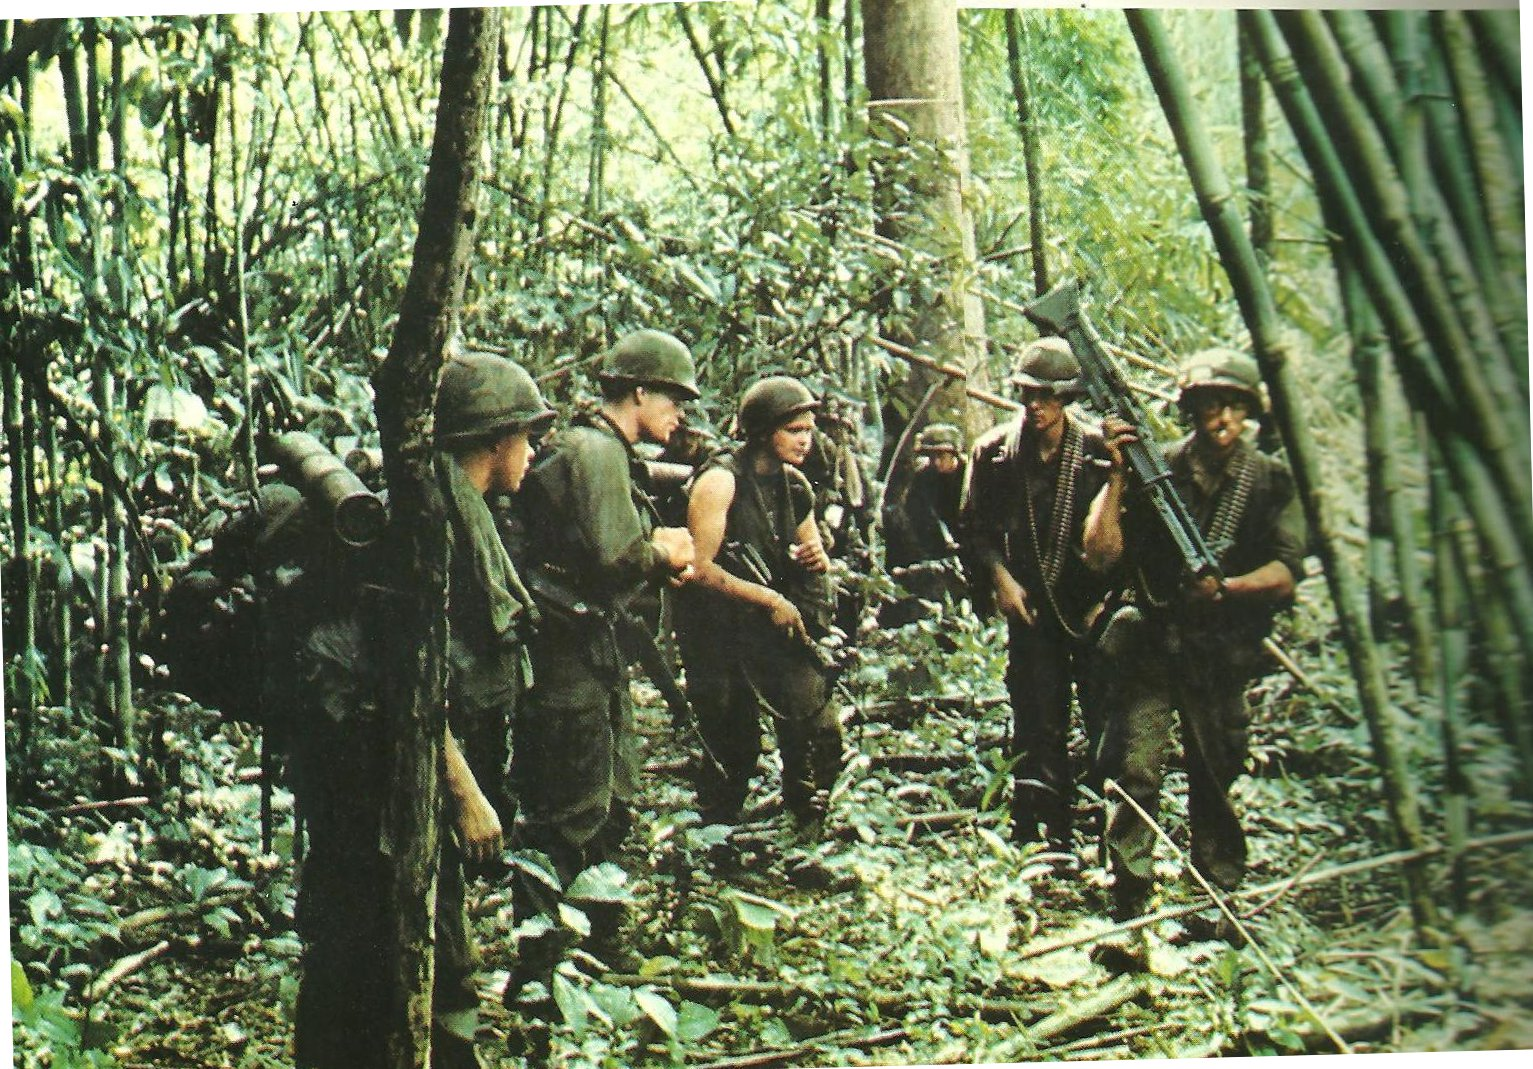 Soldiers in Hiding (1985)